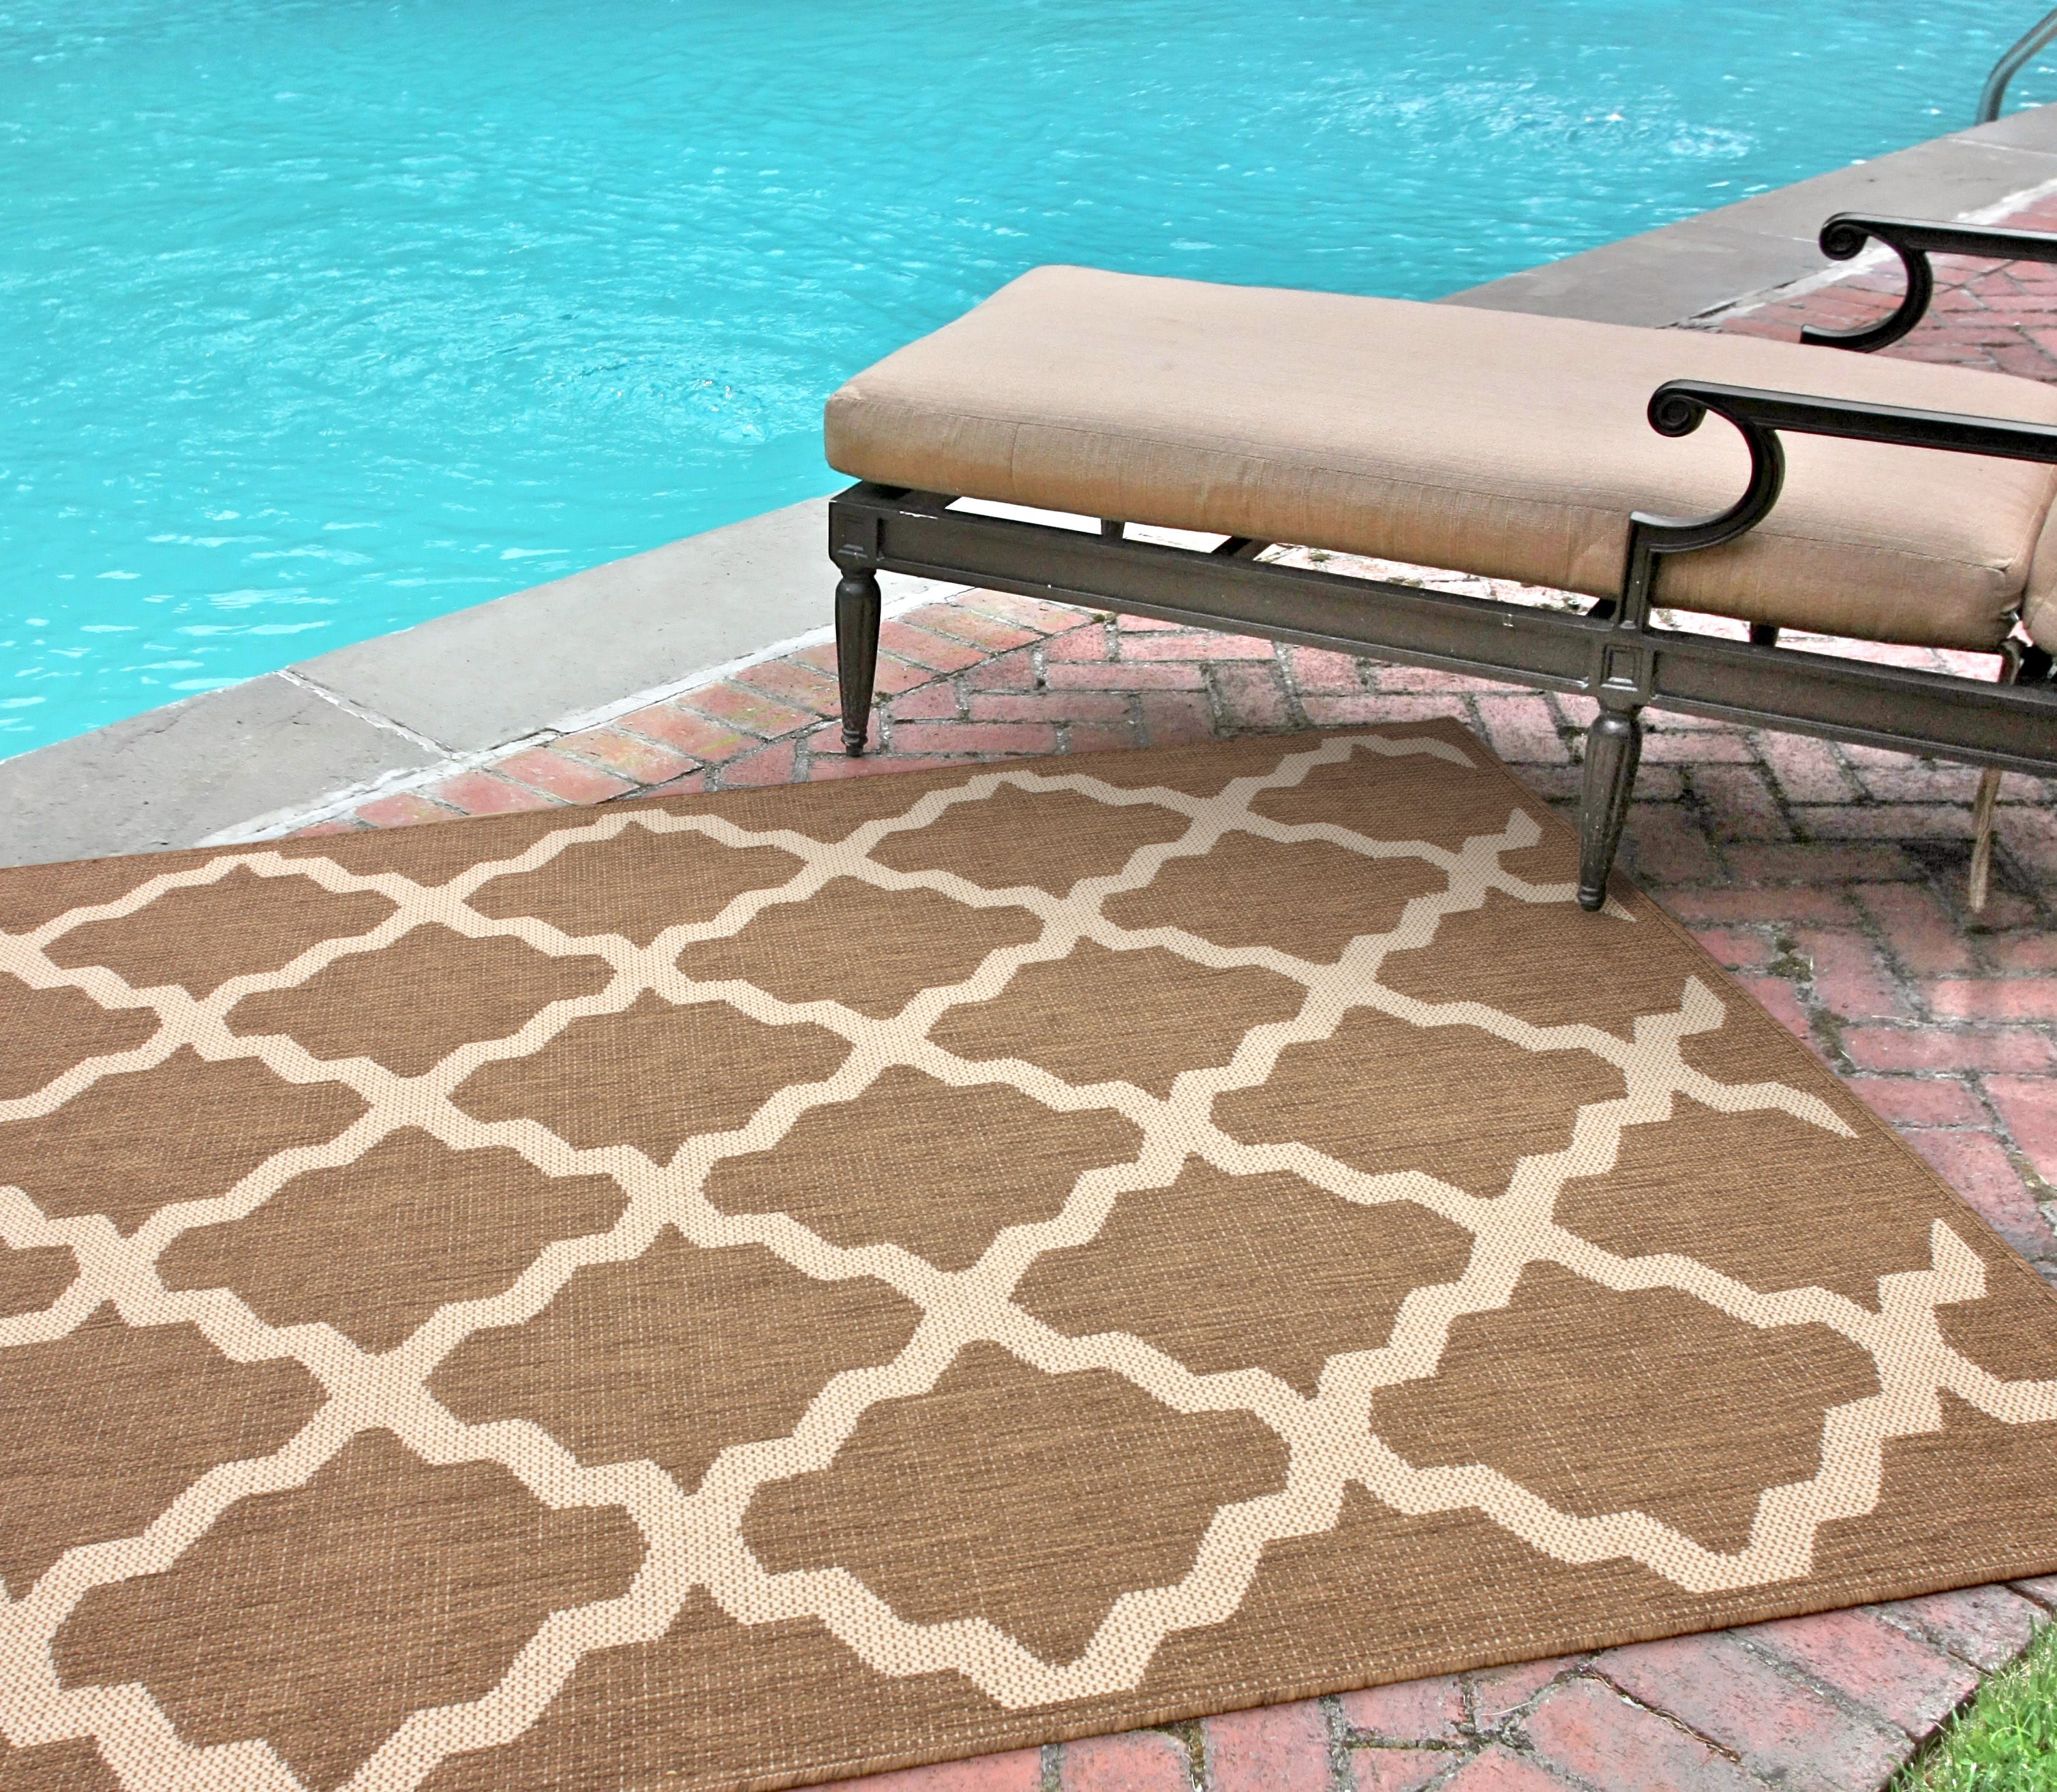 Rugs Usa Aperto Outdoor Moroccan Trellis Taupe Rug Rugs Usa Summer Sale Up To 80 Off Area Rug Carpet Design Style Cool Rugs Rugs Contemporary Area Rugs